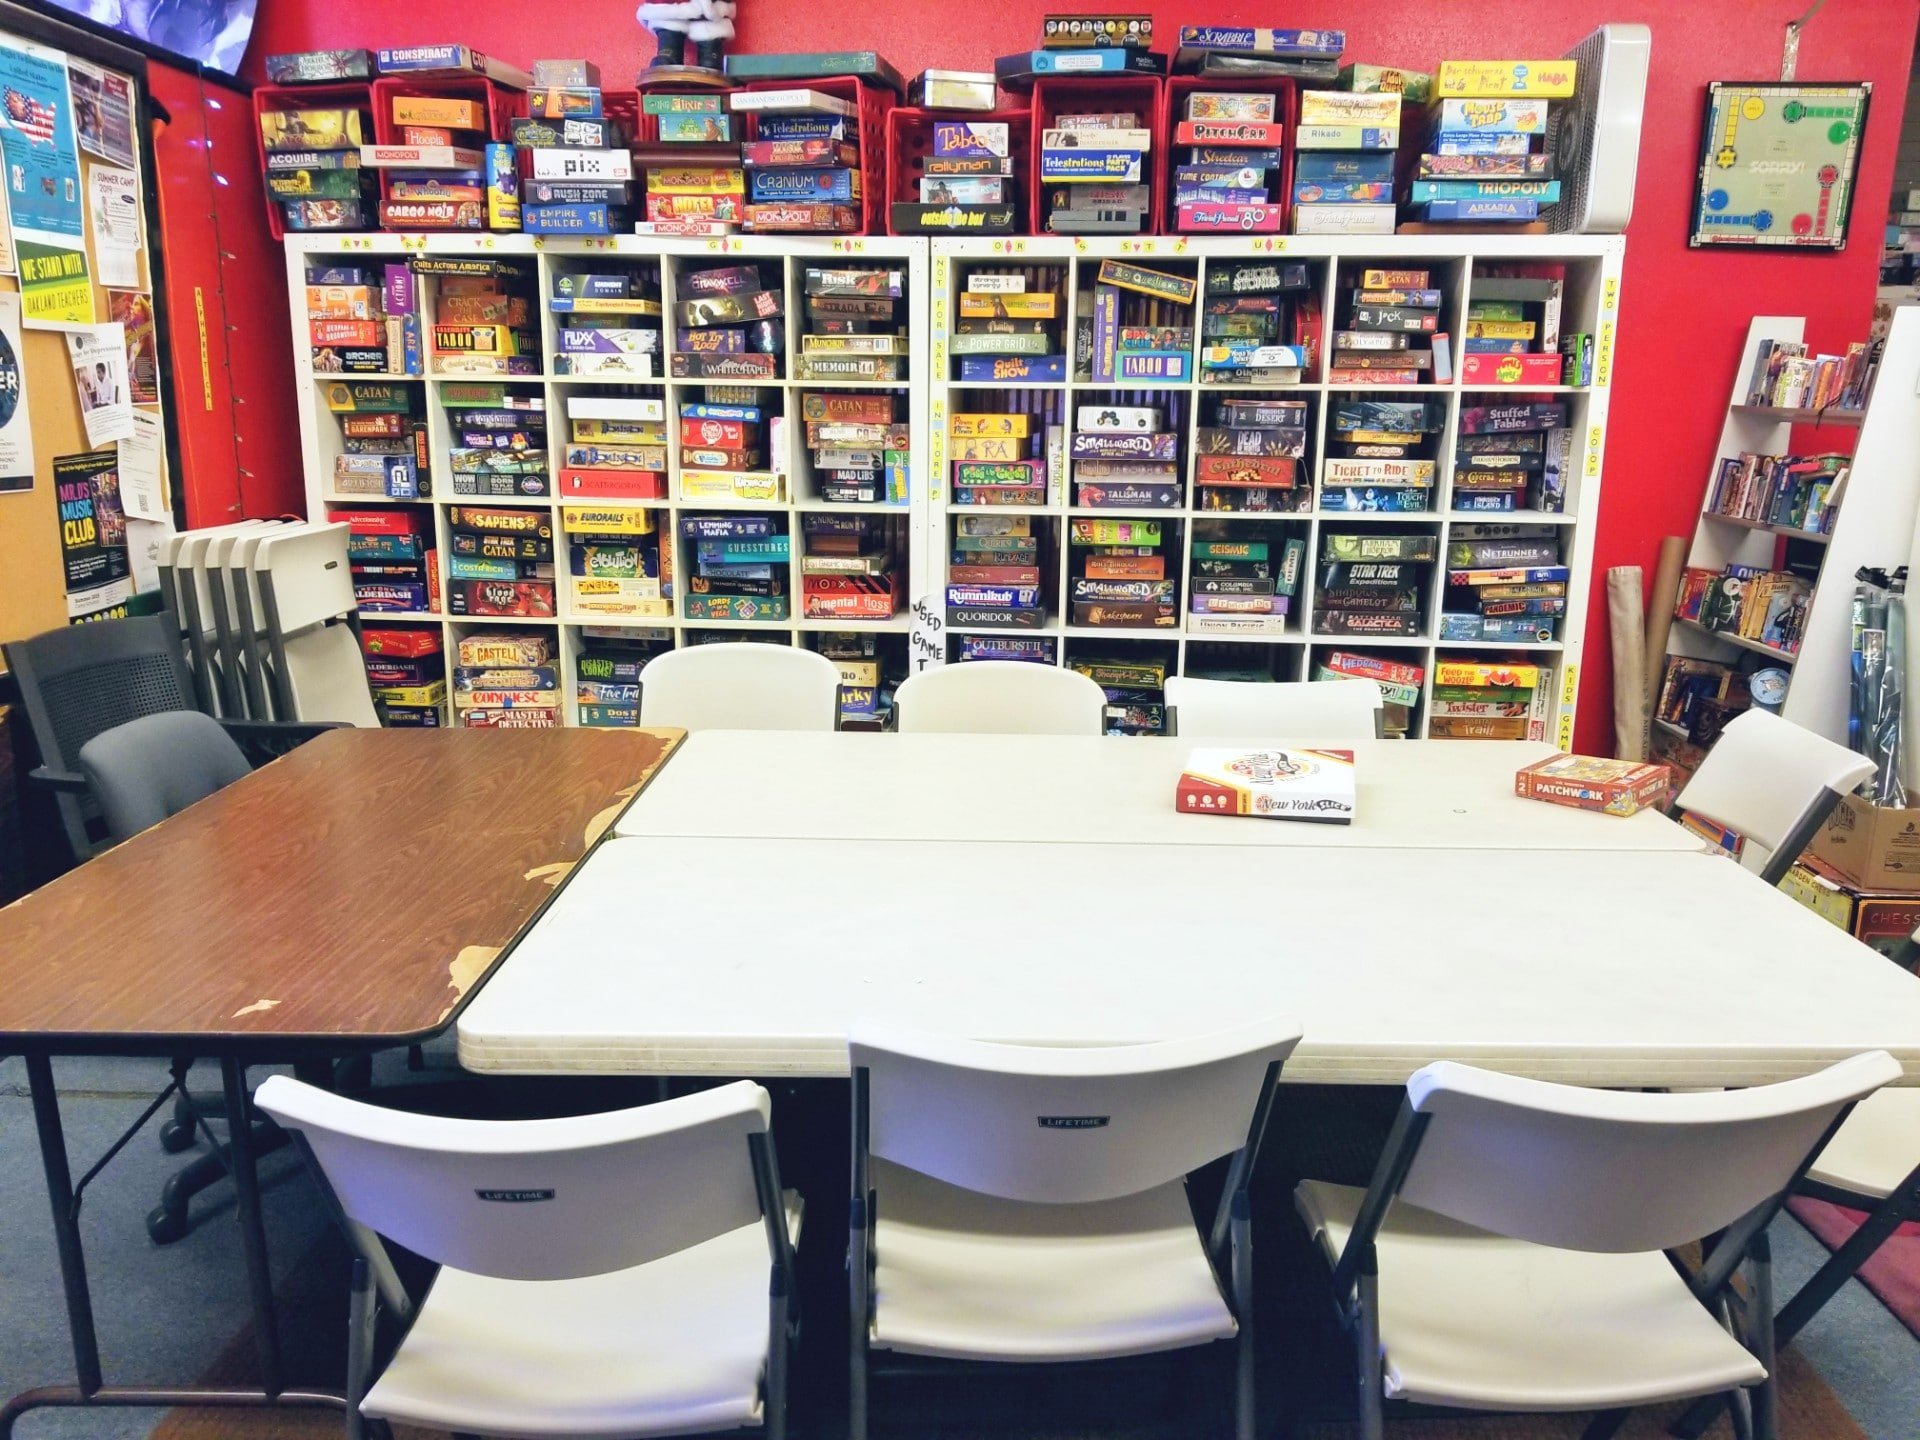 It's Your Move Games & Hobbies